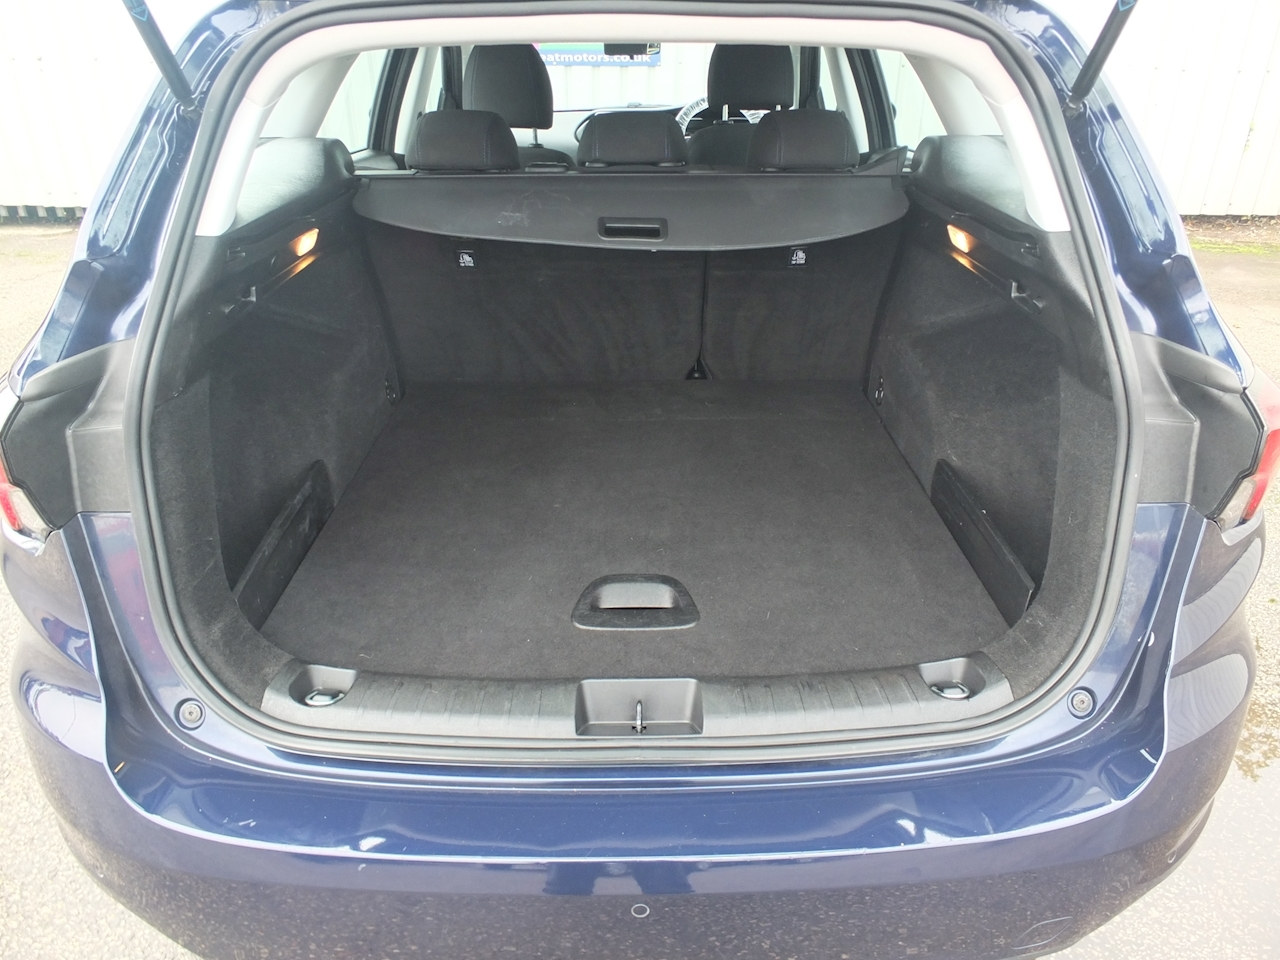 Tipo 1.4 95hp Easy Plus Estate 1.4 Manual Petrol